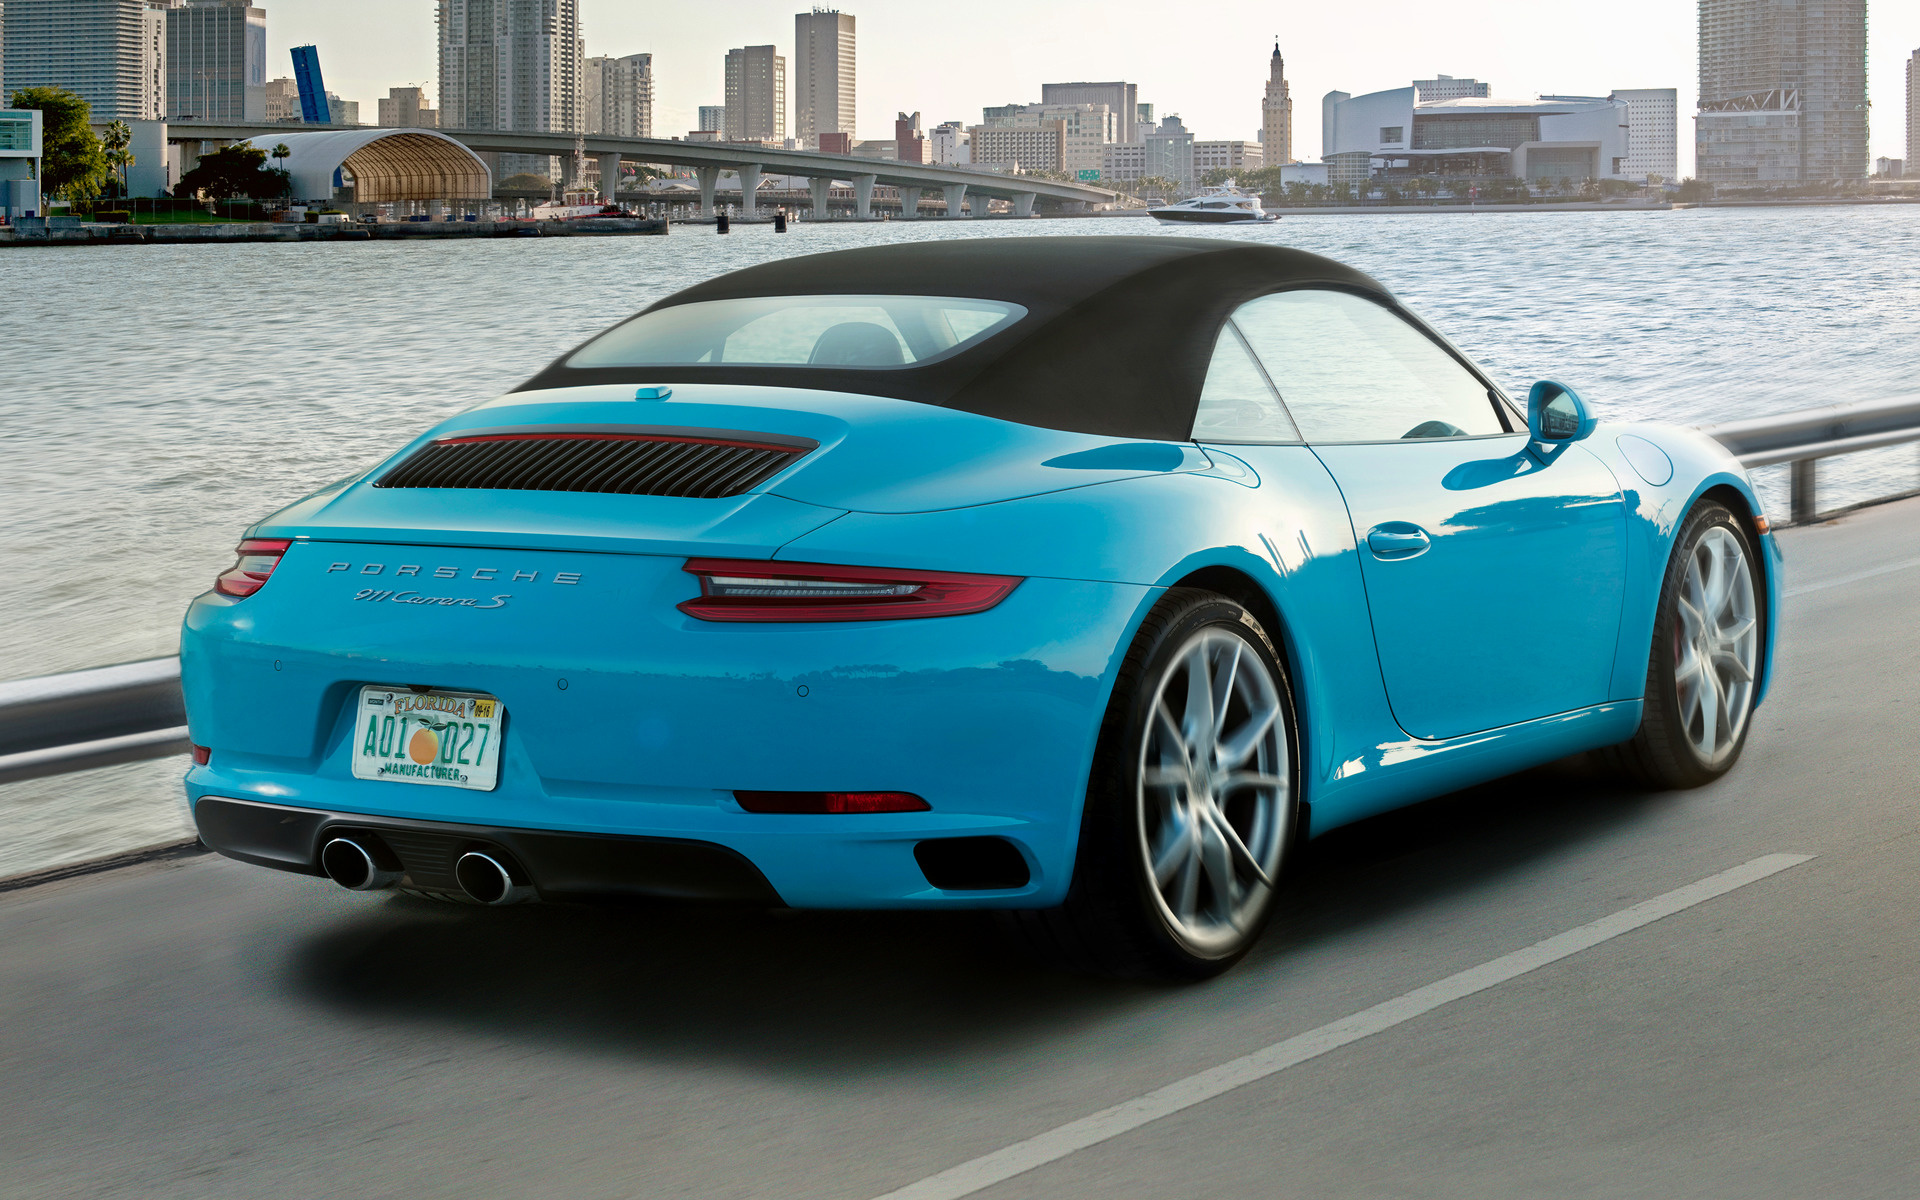 2017 porsche 911 carrera s cabriolet us wallpapers and - Porsche 911 carrera s wallpaper ...